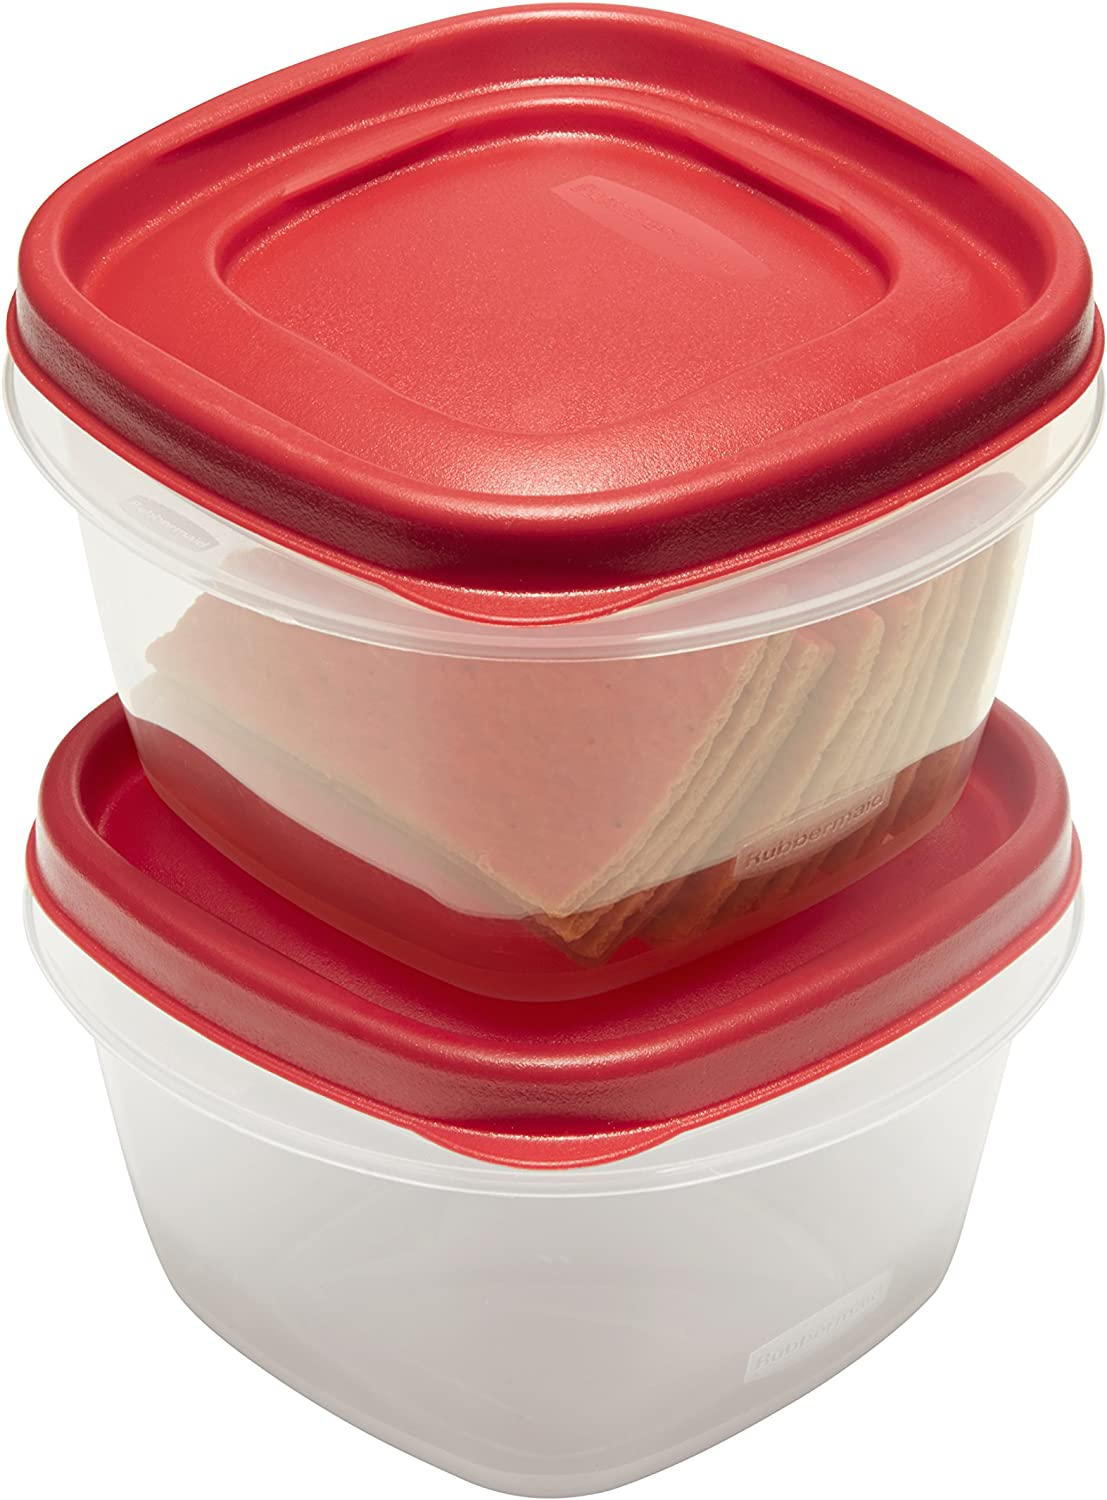 Rubbermaid Easy Find Lids Food Storage Containers, 2 Cup, Racer Red, 4-Piece Set 1857116